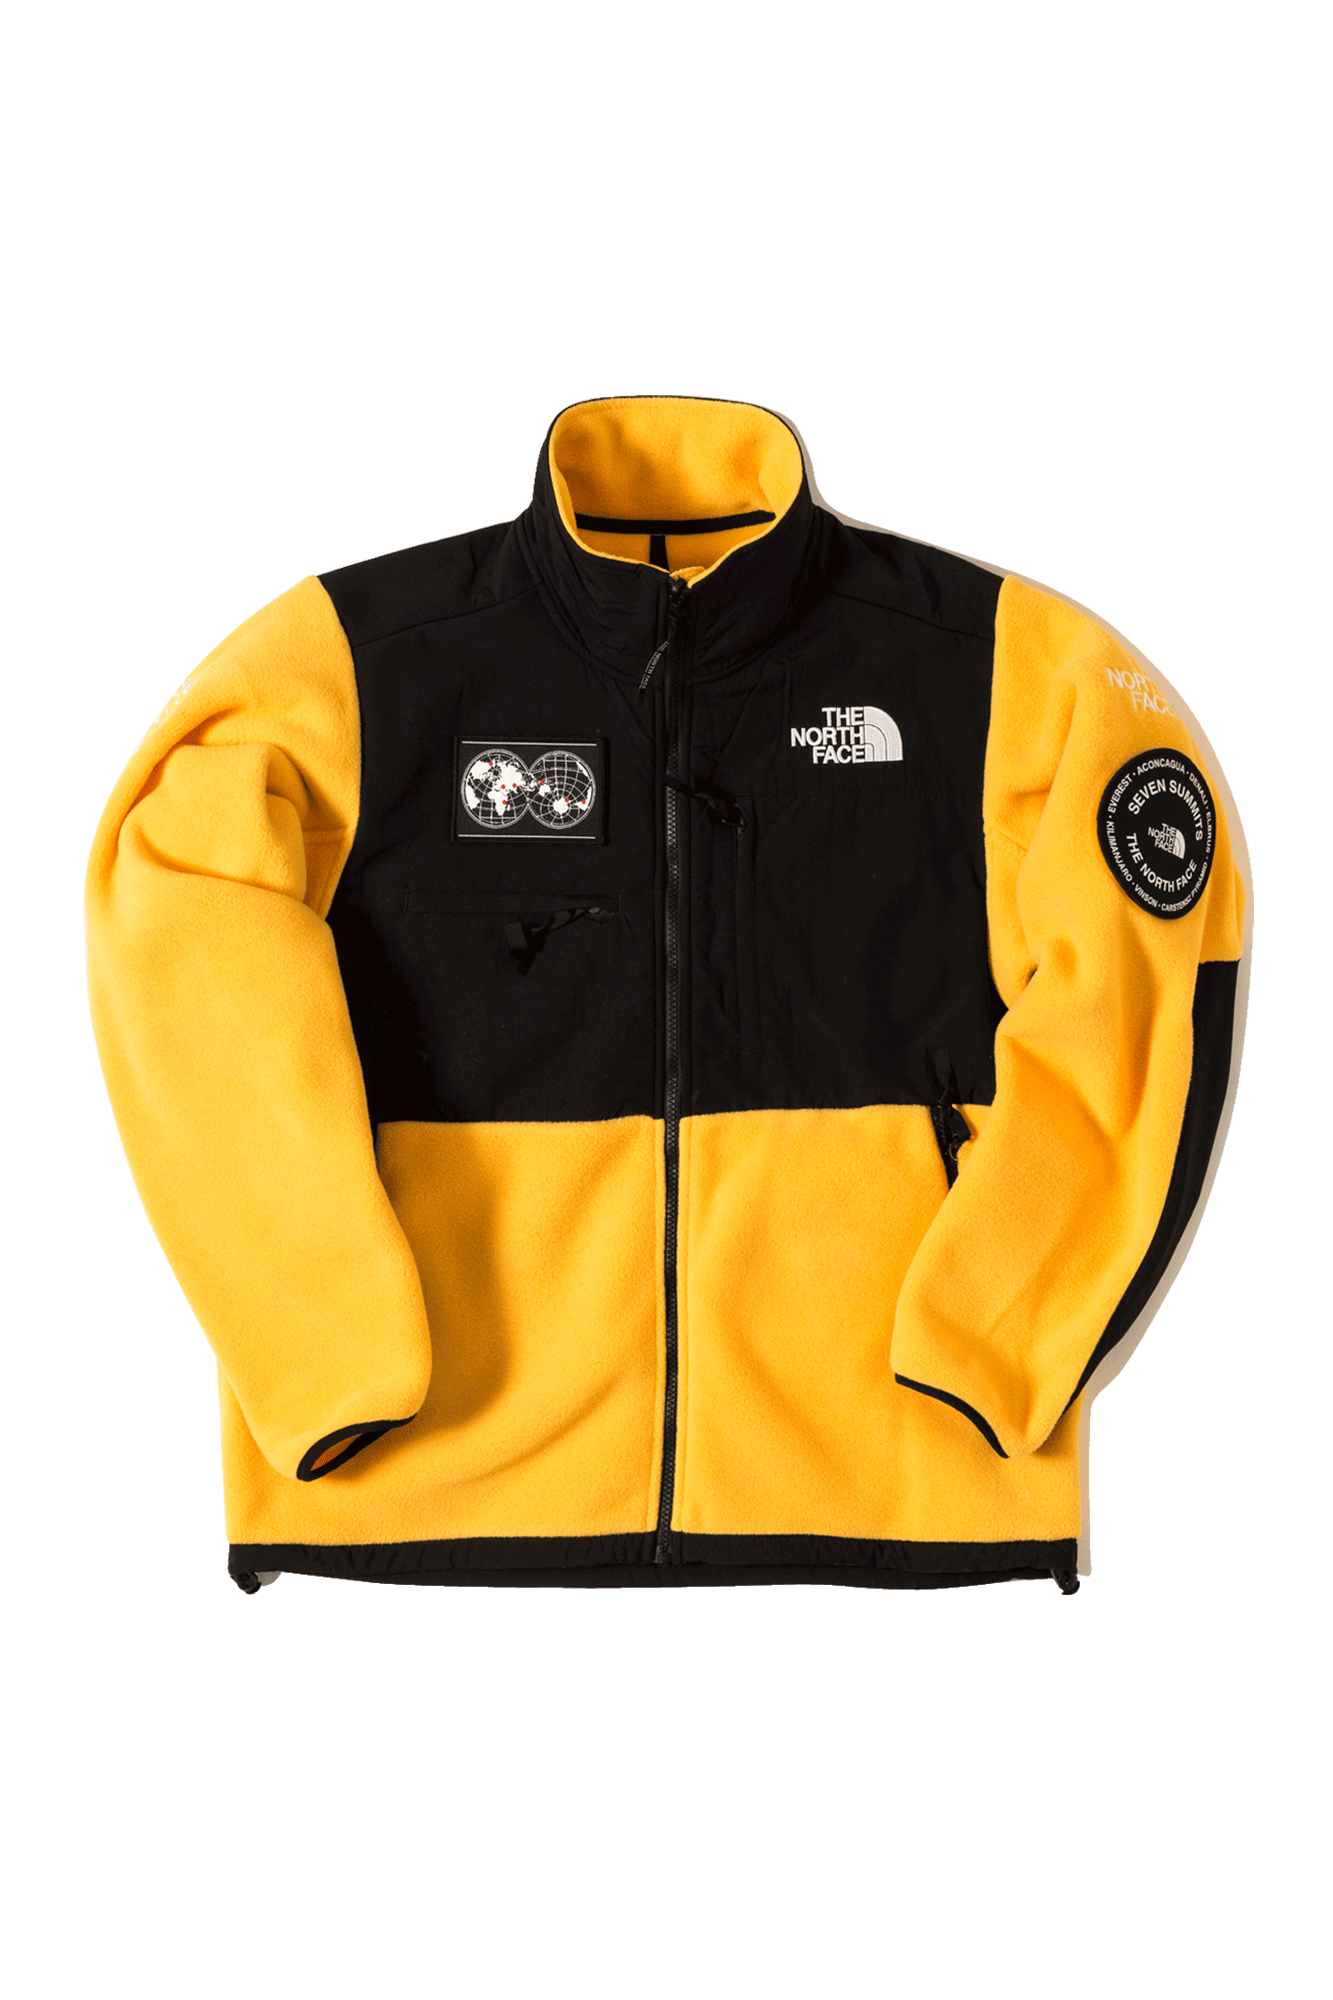 7SE 95 Retro Denali Jacket Yellow